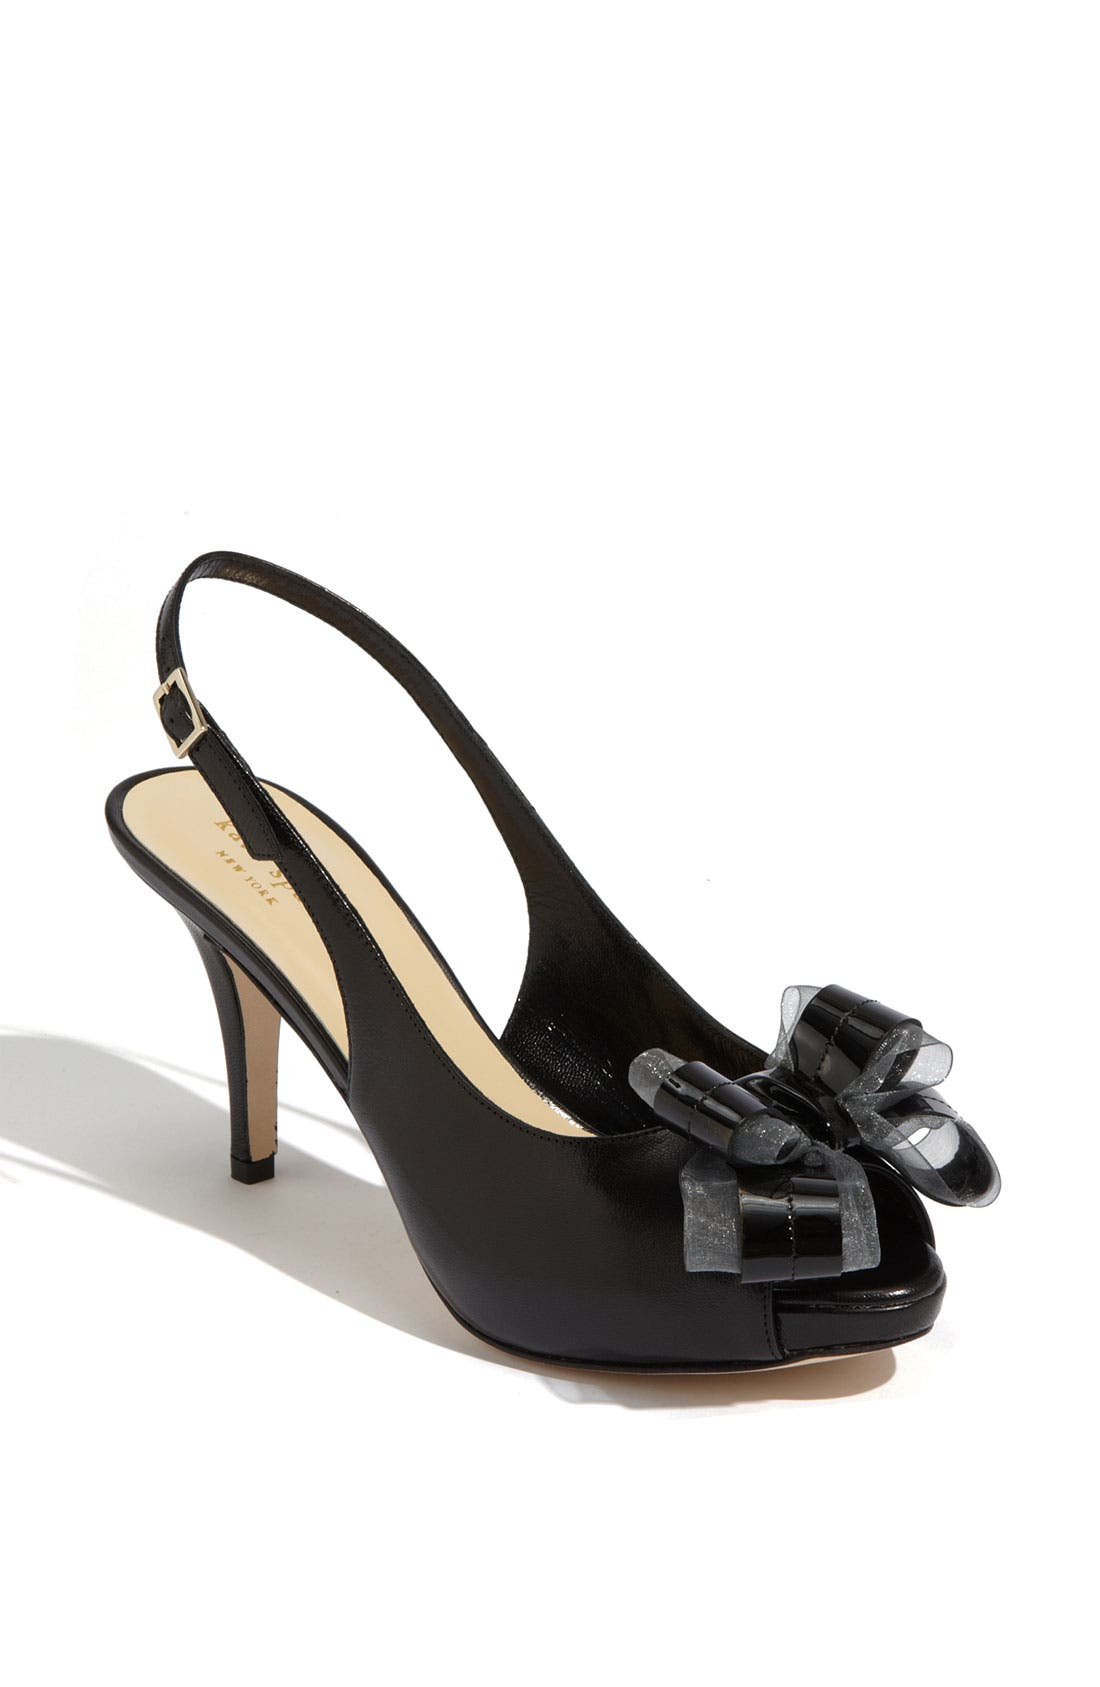 Main Image - kate spade new york 'billow' pump